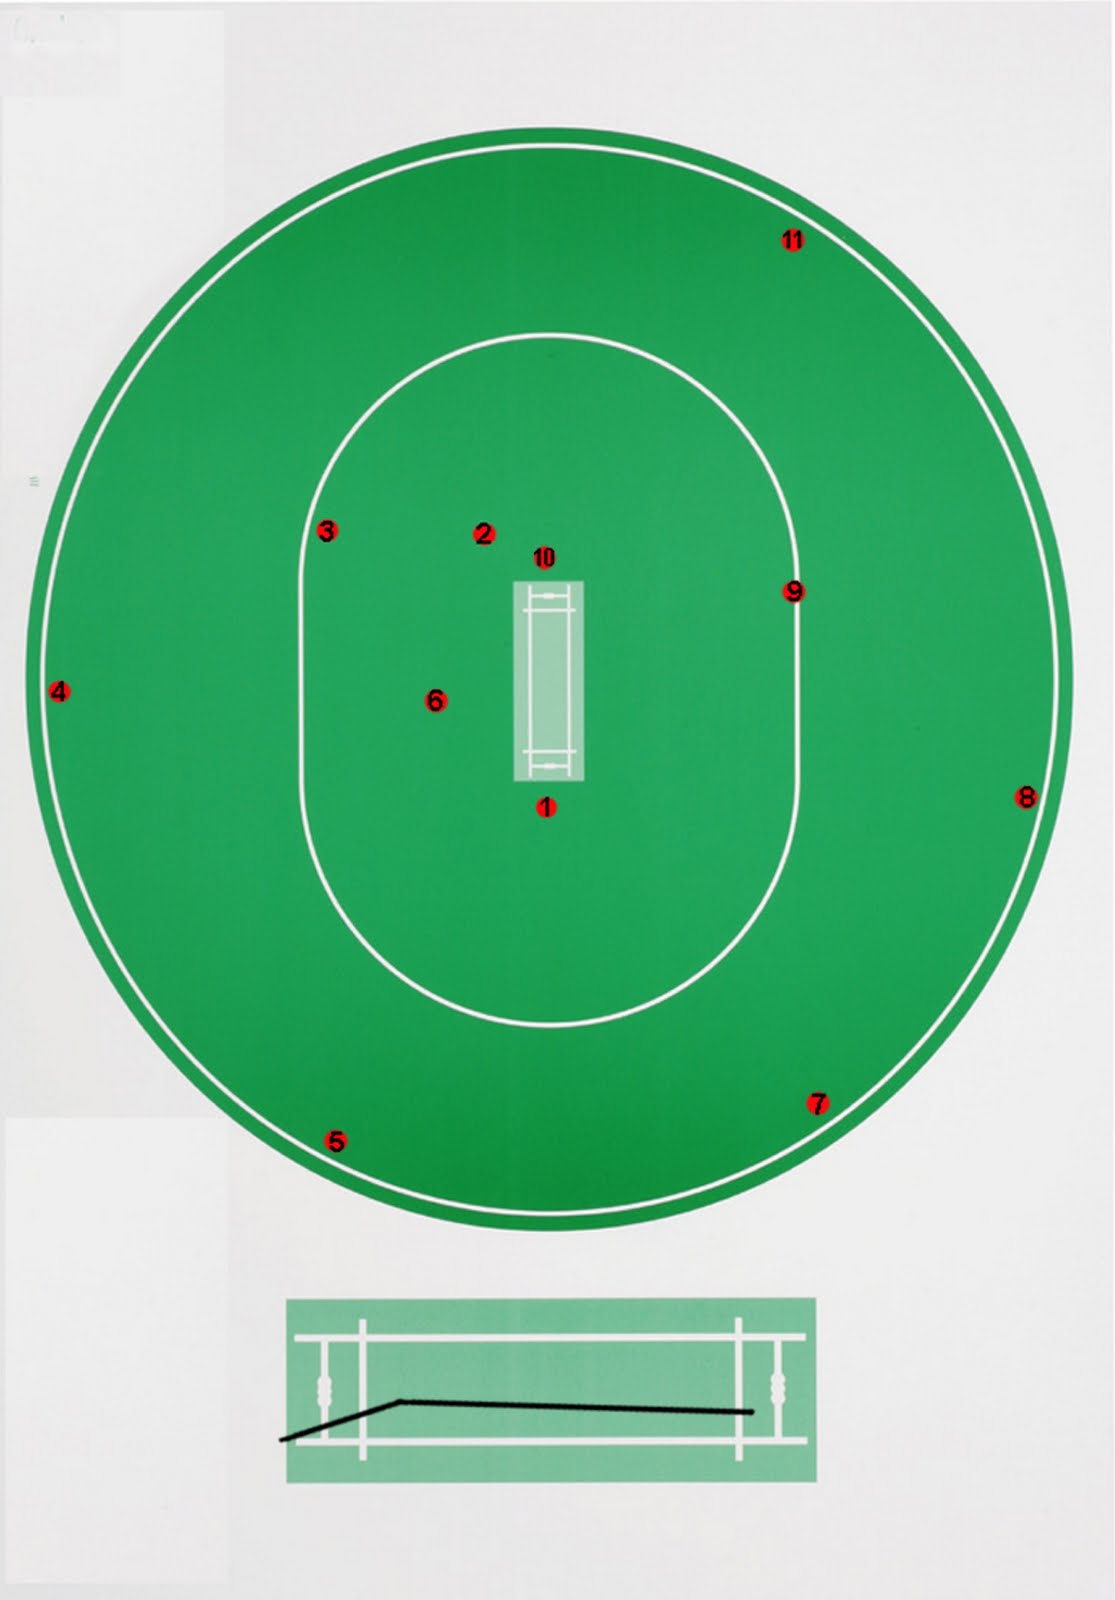 hight resolution of here s another warne field for t20 not a great deal of difference from the former post the only real difference is that the cover fielder is a lot closer